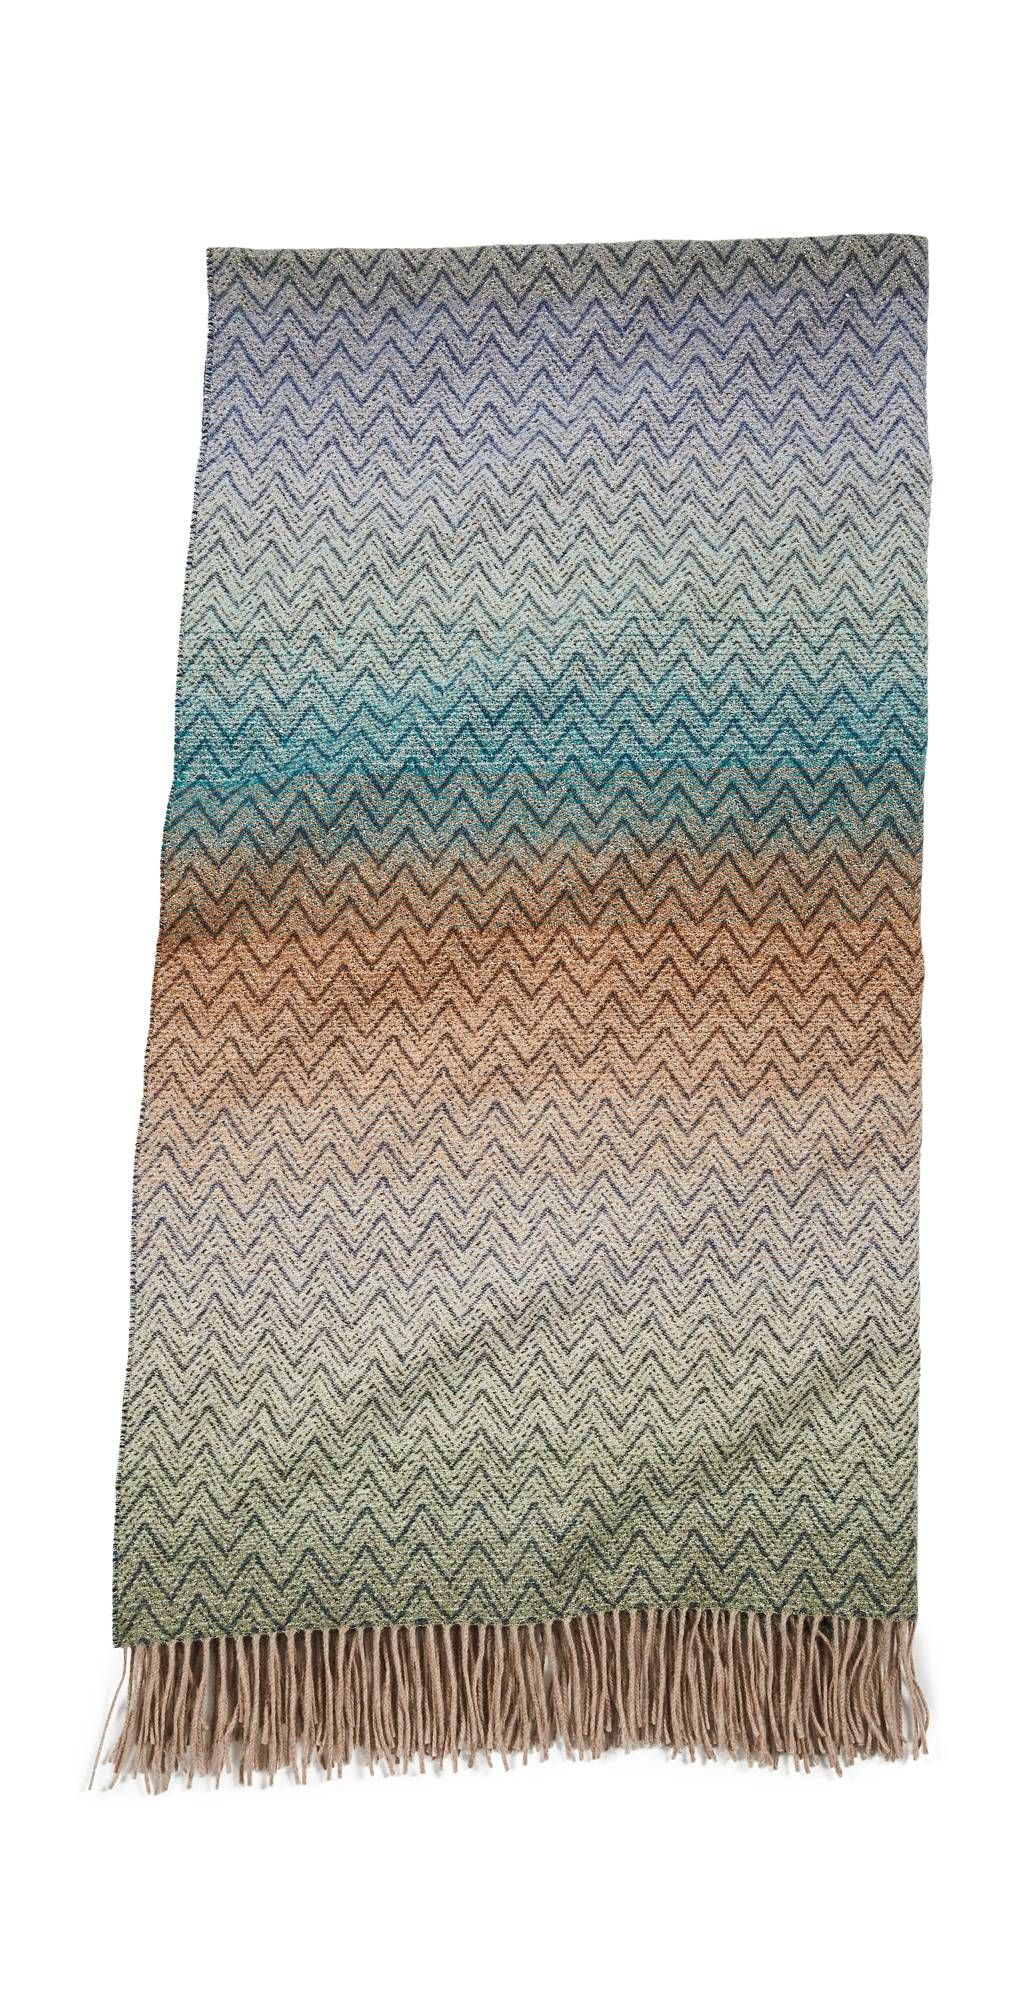 Missoni Home Pascal Throw  - Multi Blue - Size: One Size